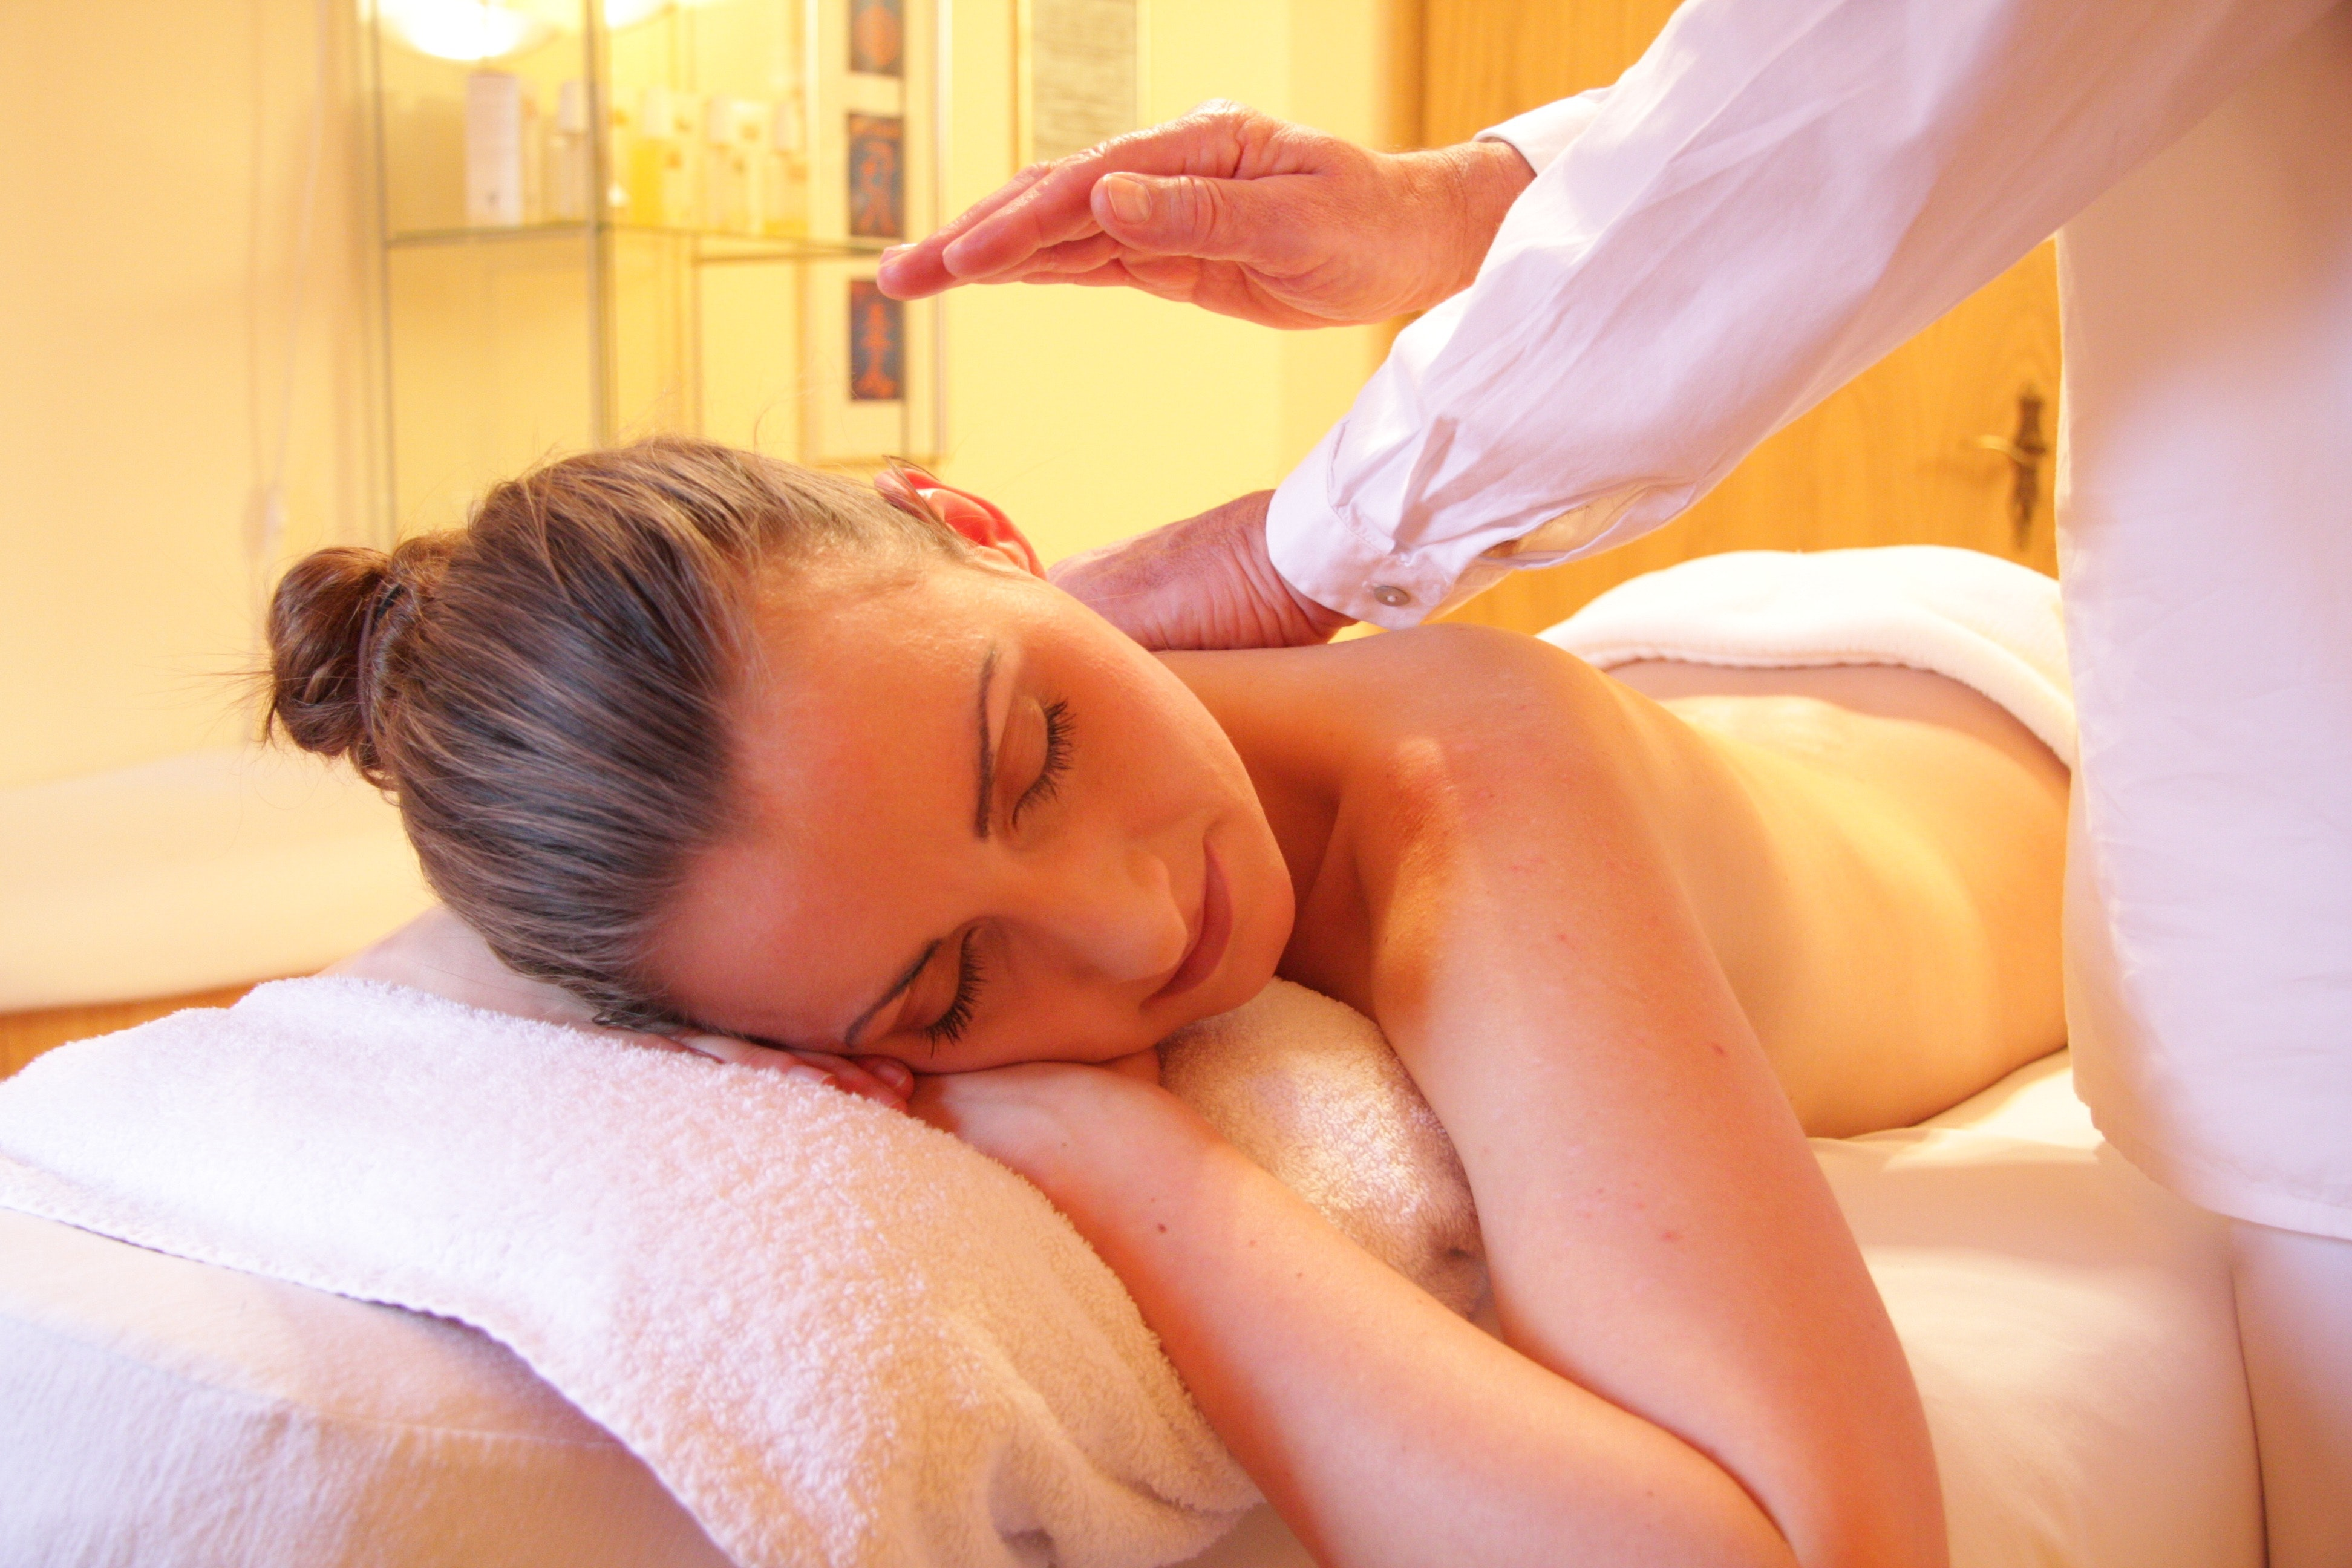 Massages can be a great incentive for remote employees